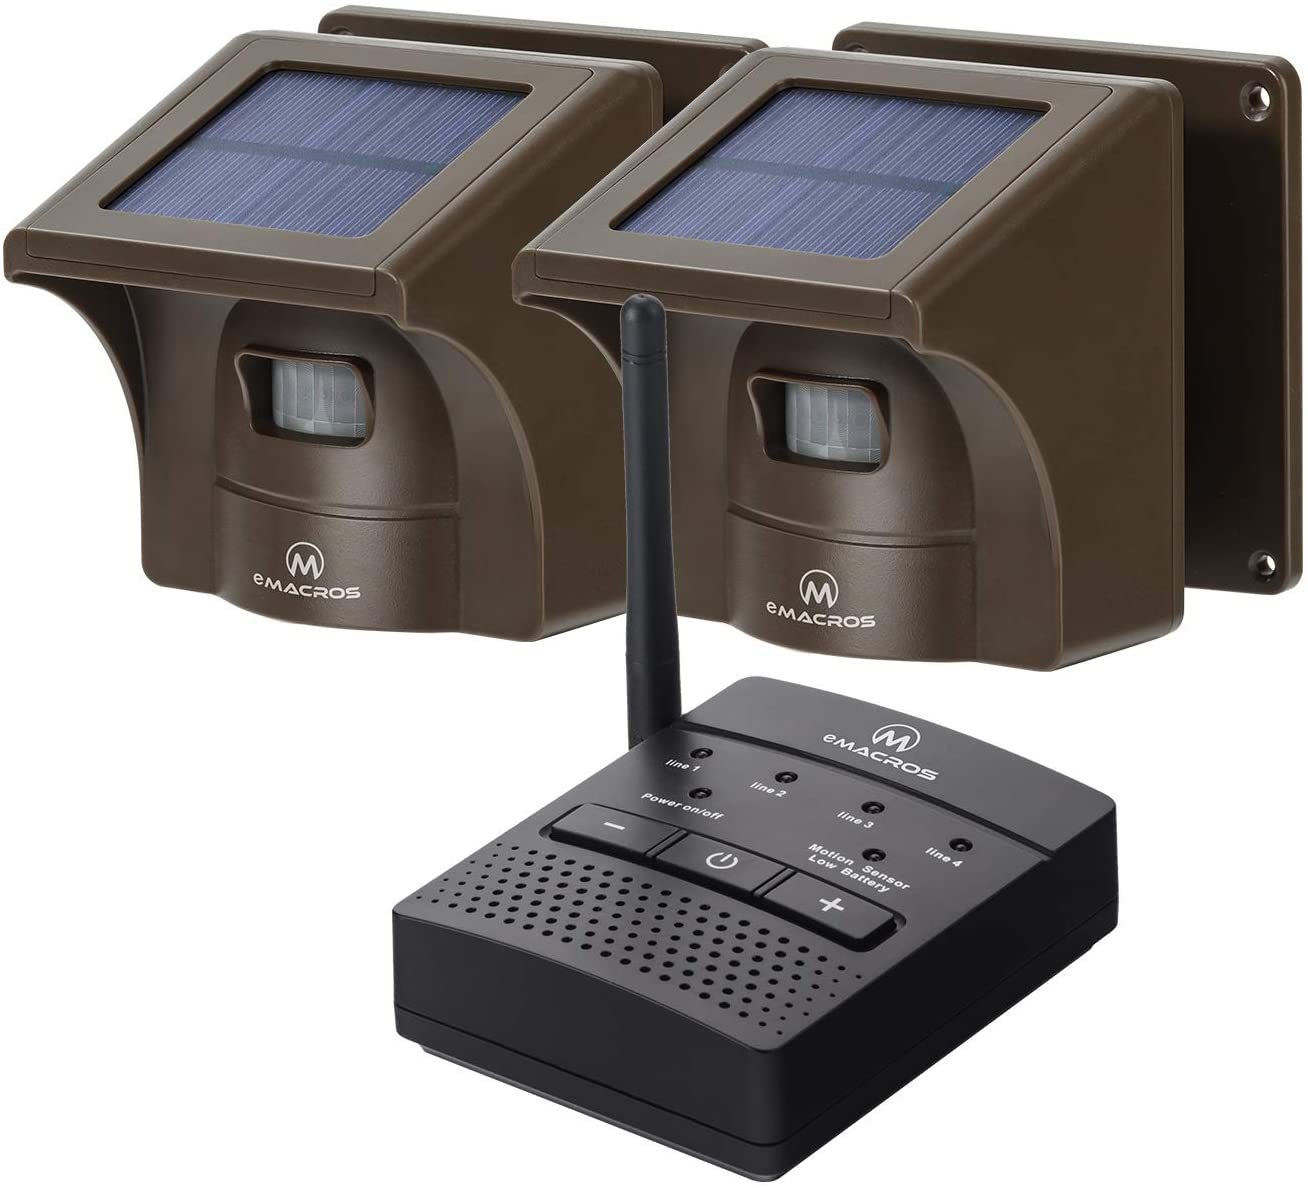 1/2 Mile Solar Driveway Alarm Sytem Wireless Long Range Outdoor Weather Resistant Motion Sensor & Detector- Driveway Alarms Wireless Outside Monitor & Protect